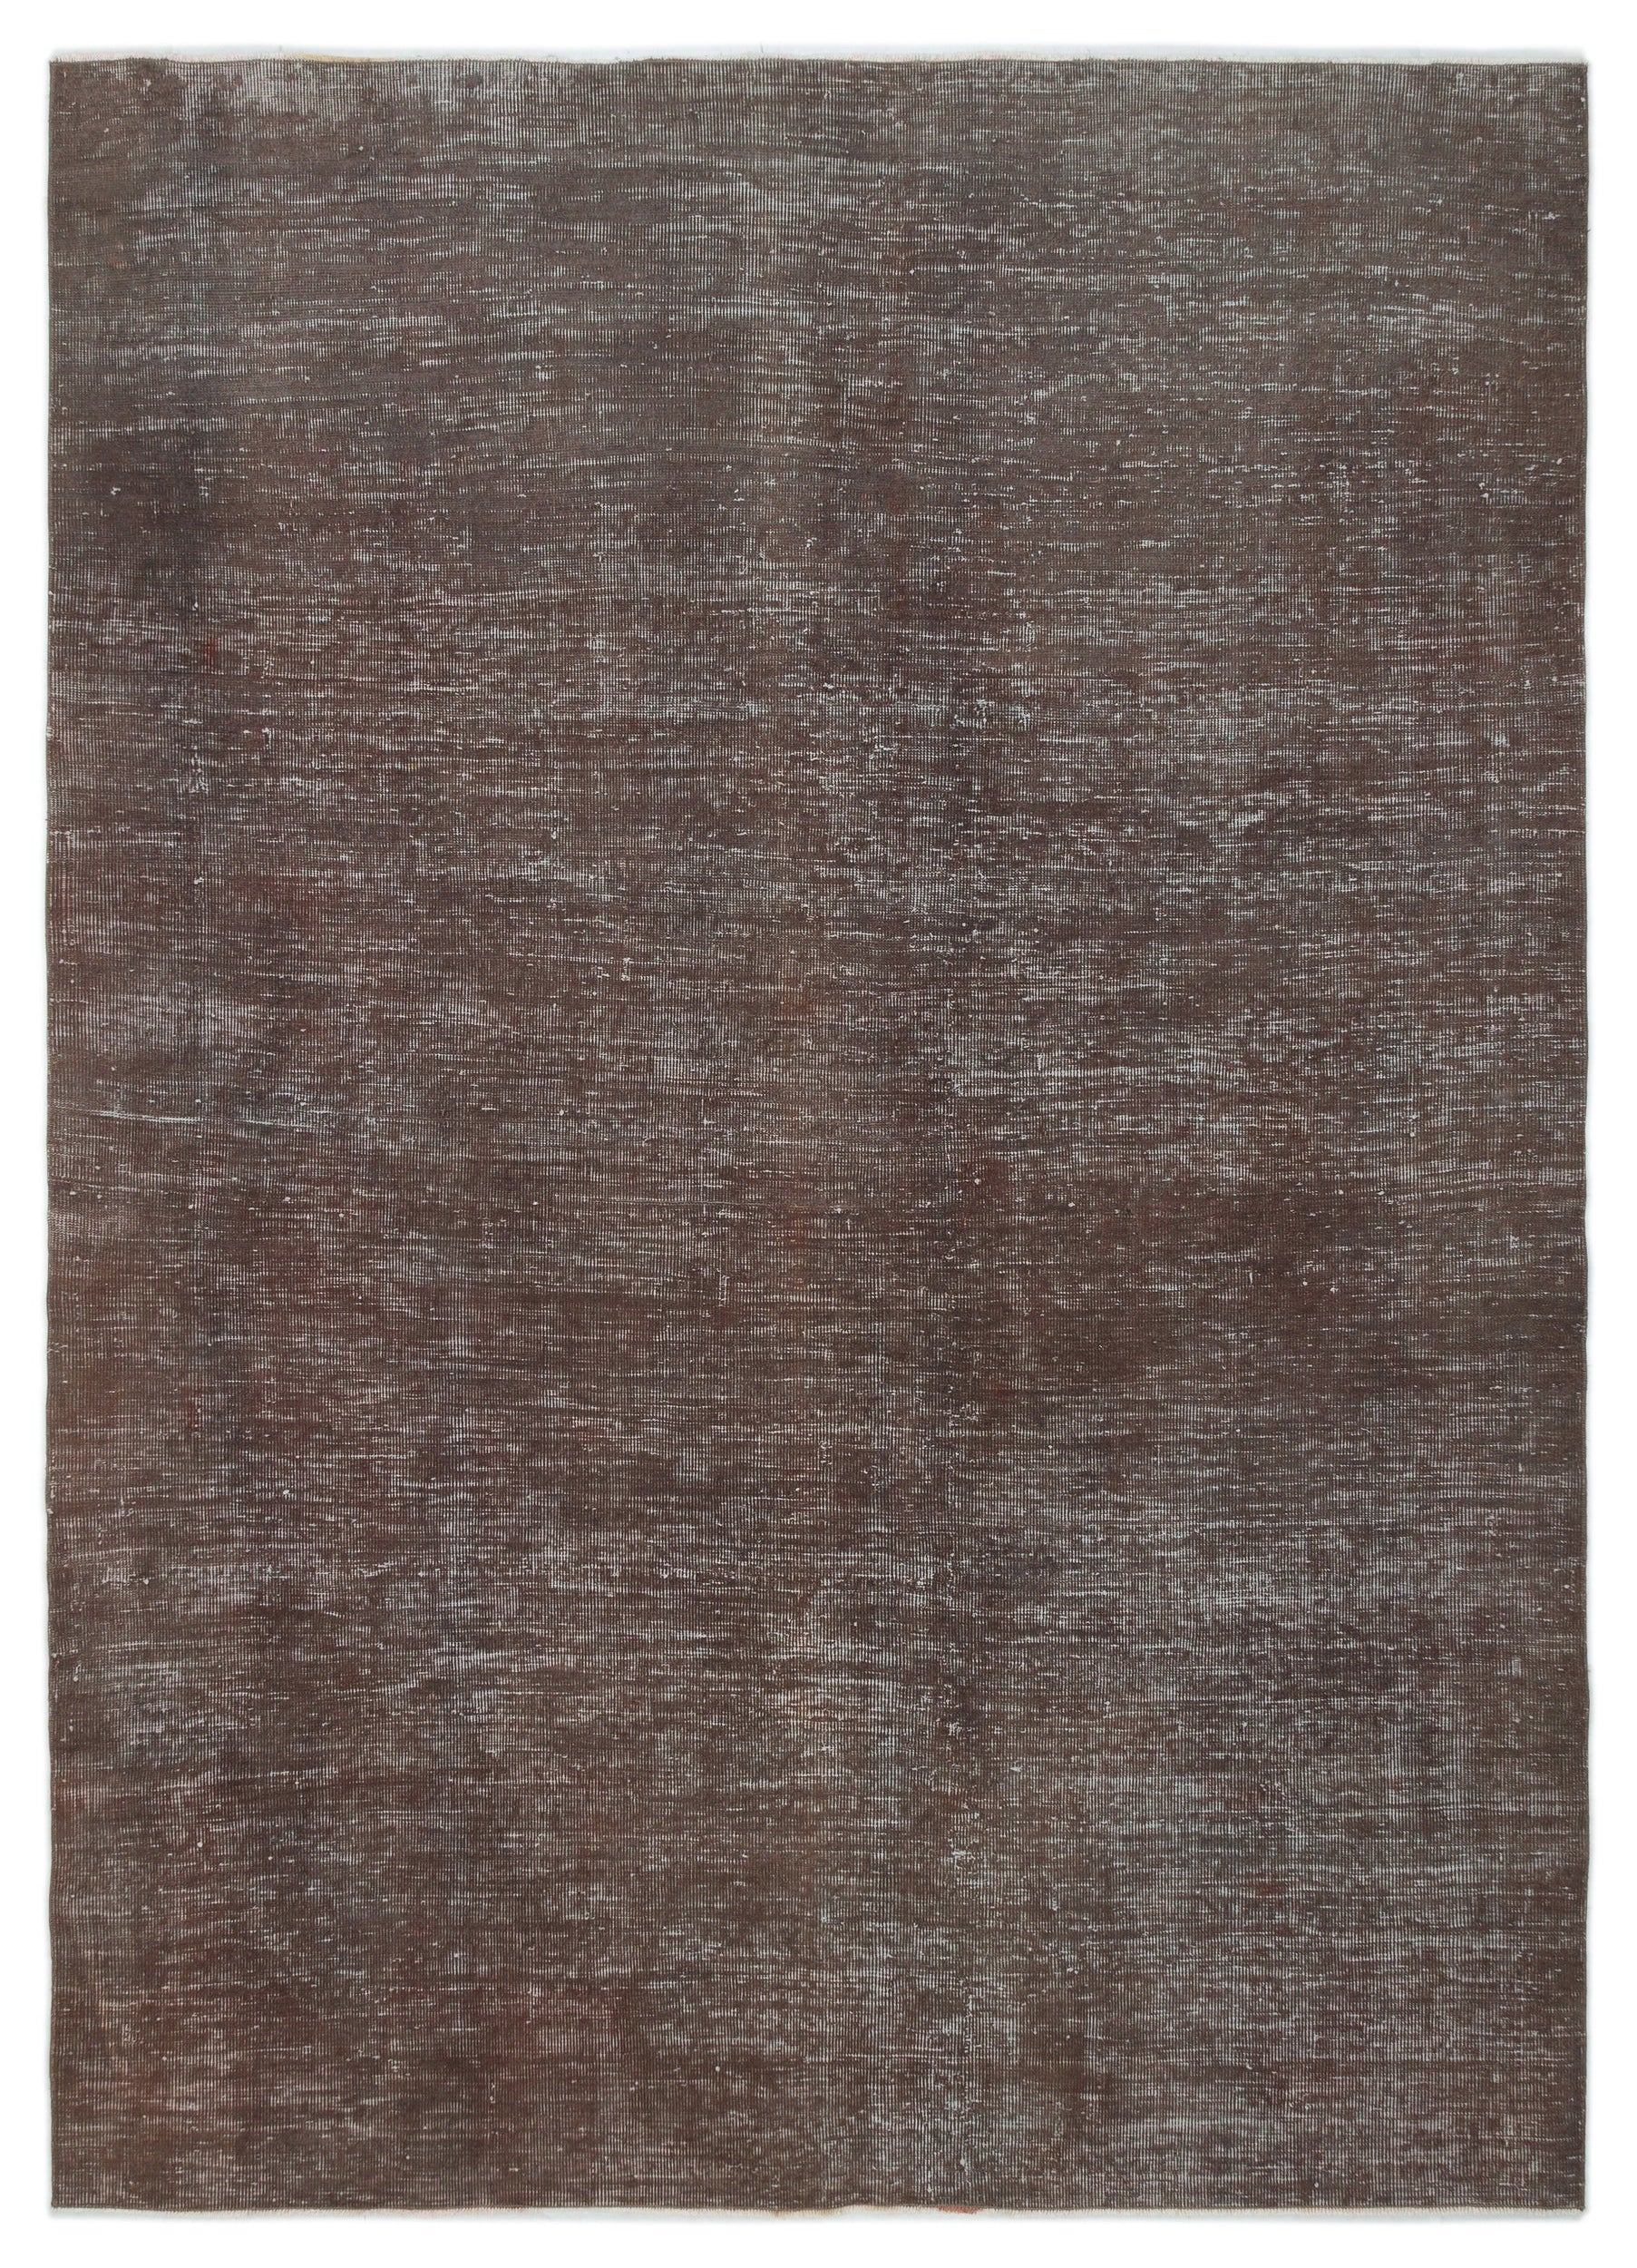 Brown Over Dyed Vintage Rug 6'9'' x 9'1'' ft 206 x 277 cm